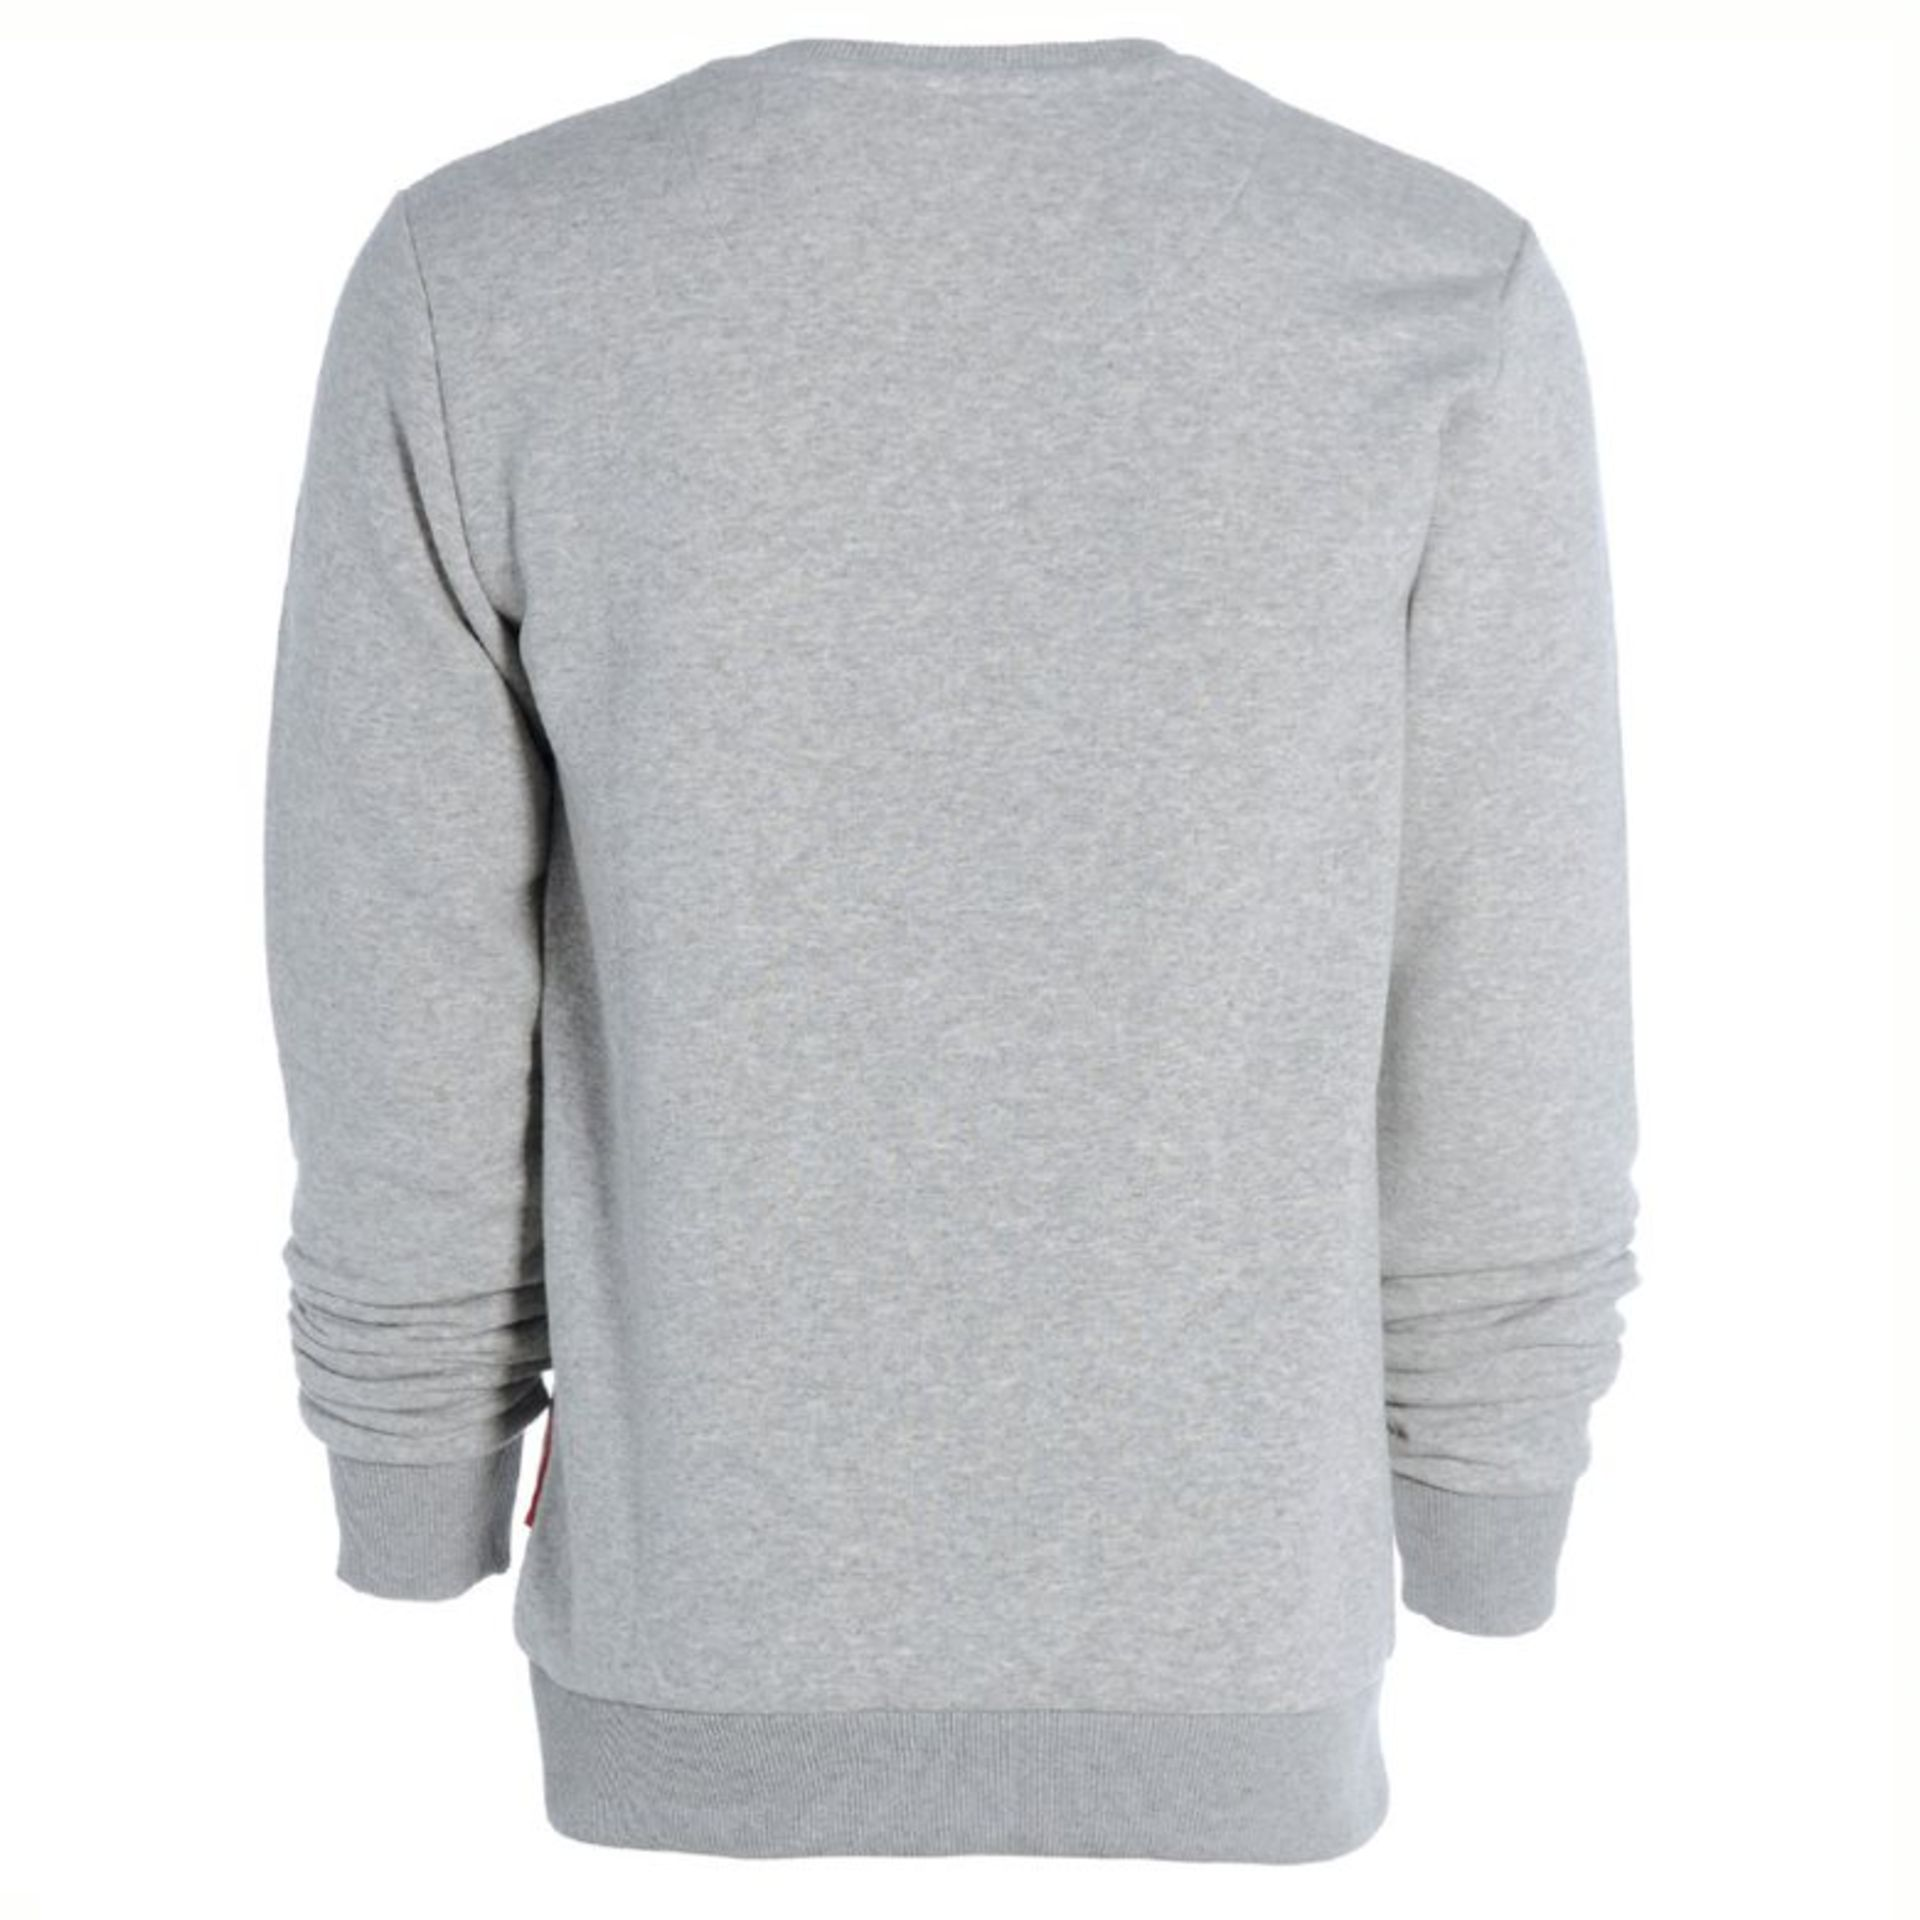 Criminal Damage Men's Sweater - Image 2 of 2